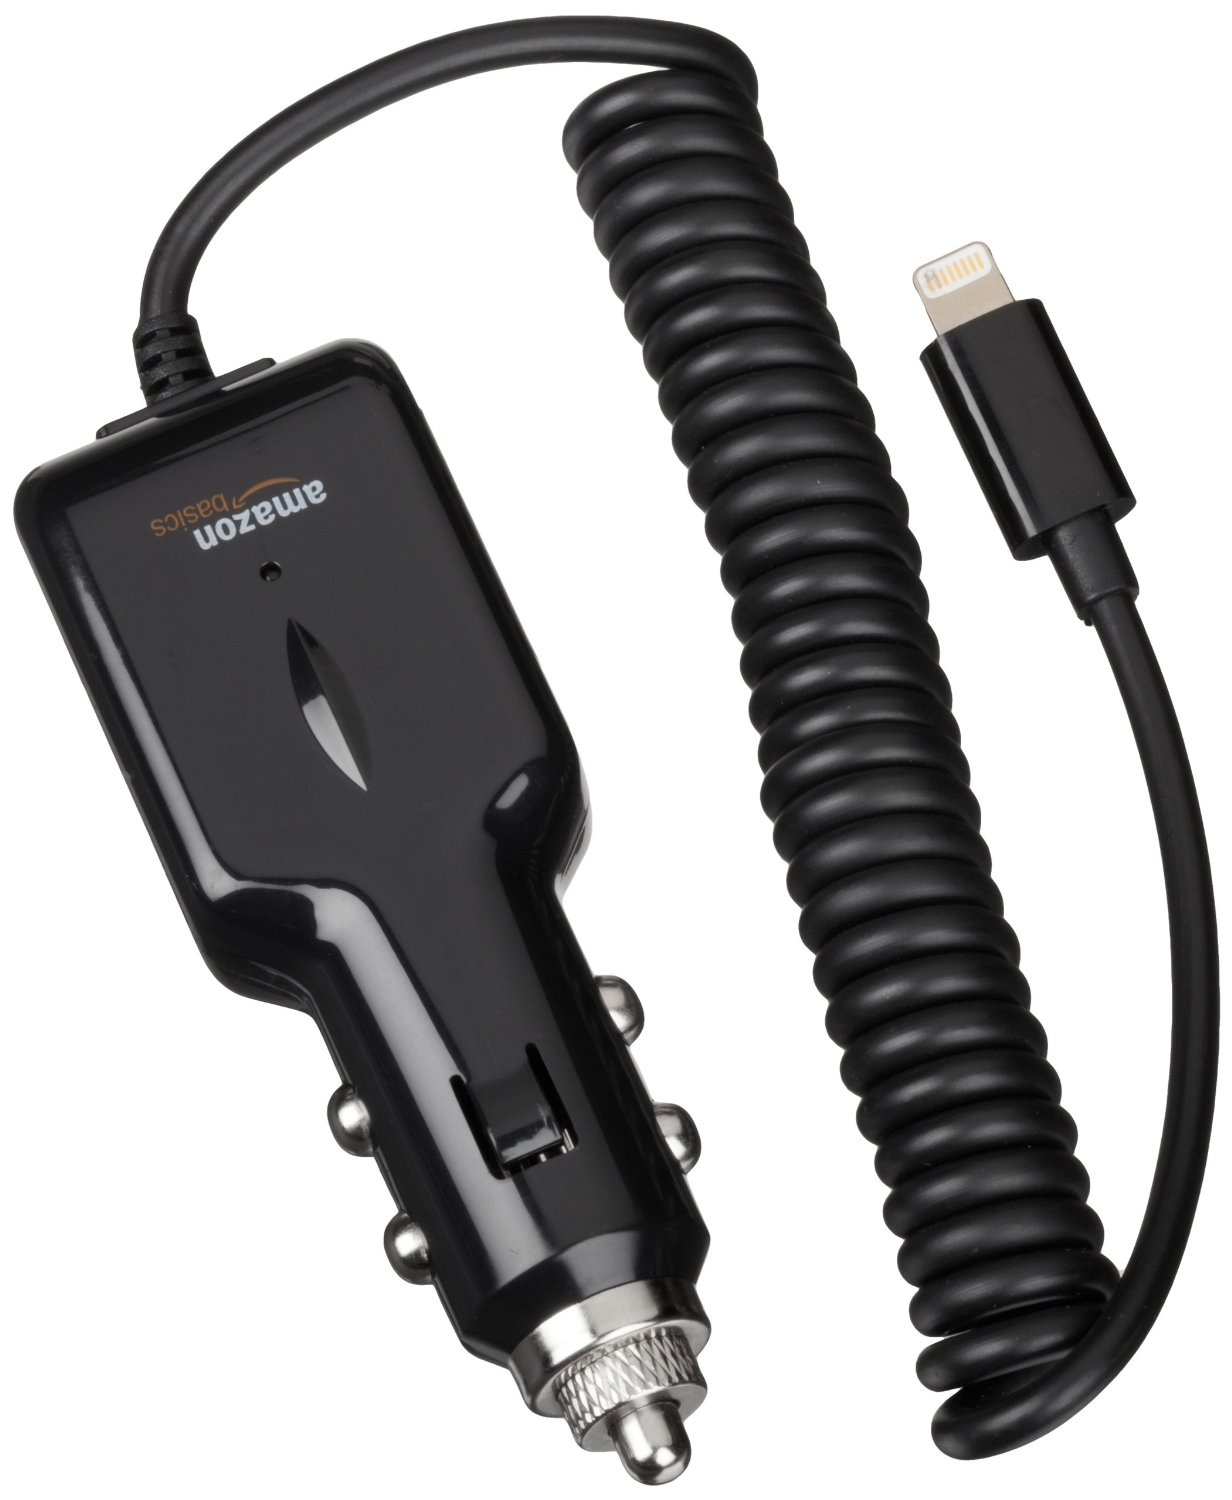 Keep Your IPhone Charged While Driving With AmazonBasic's